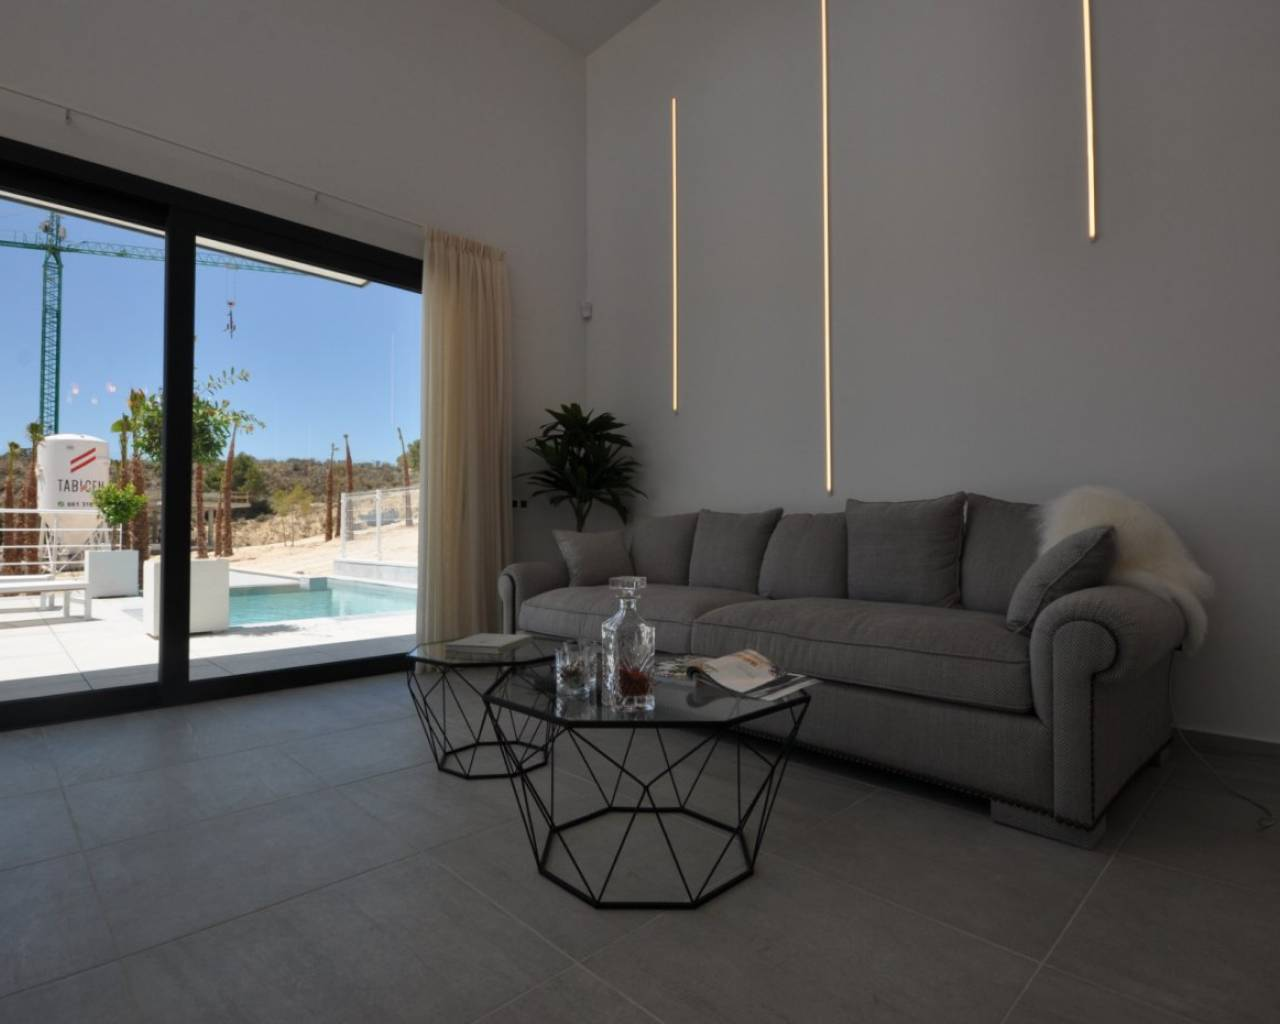 New Build - Luxury Villa - San Miguel de Salinas - Los altos de san miguel